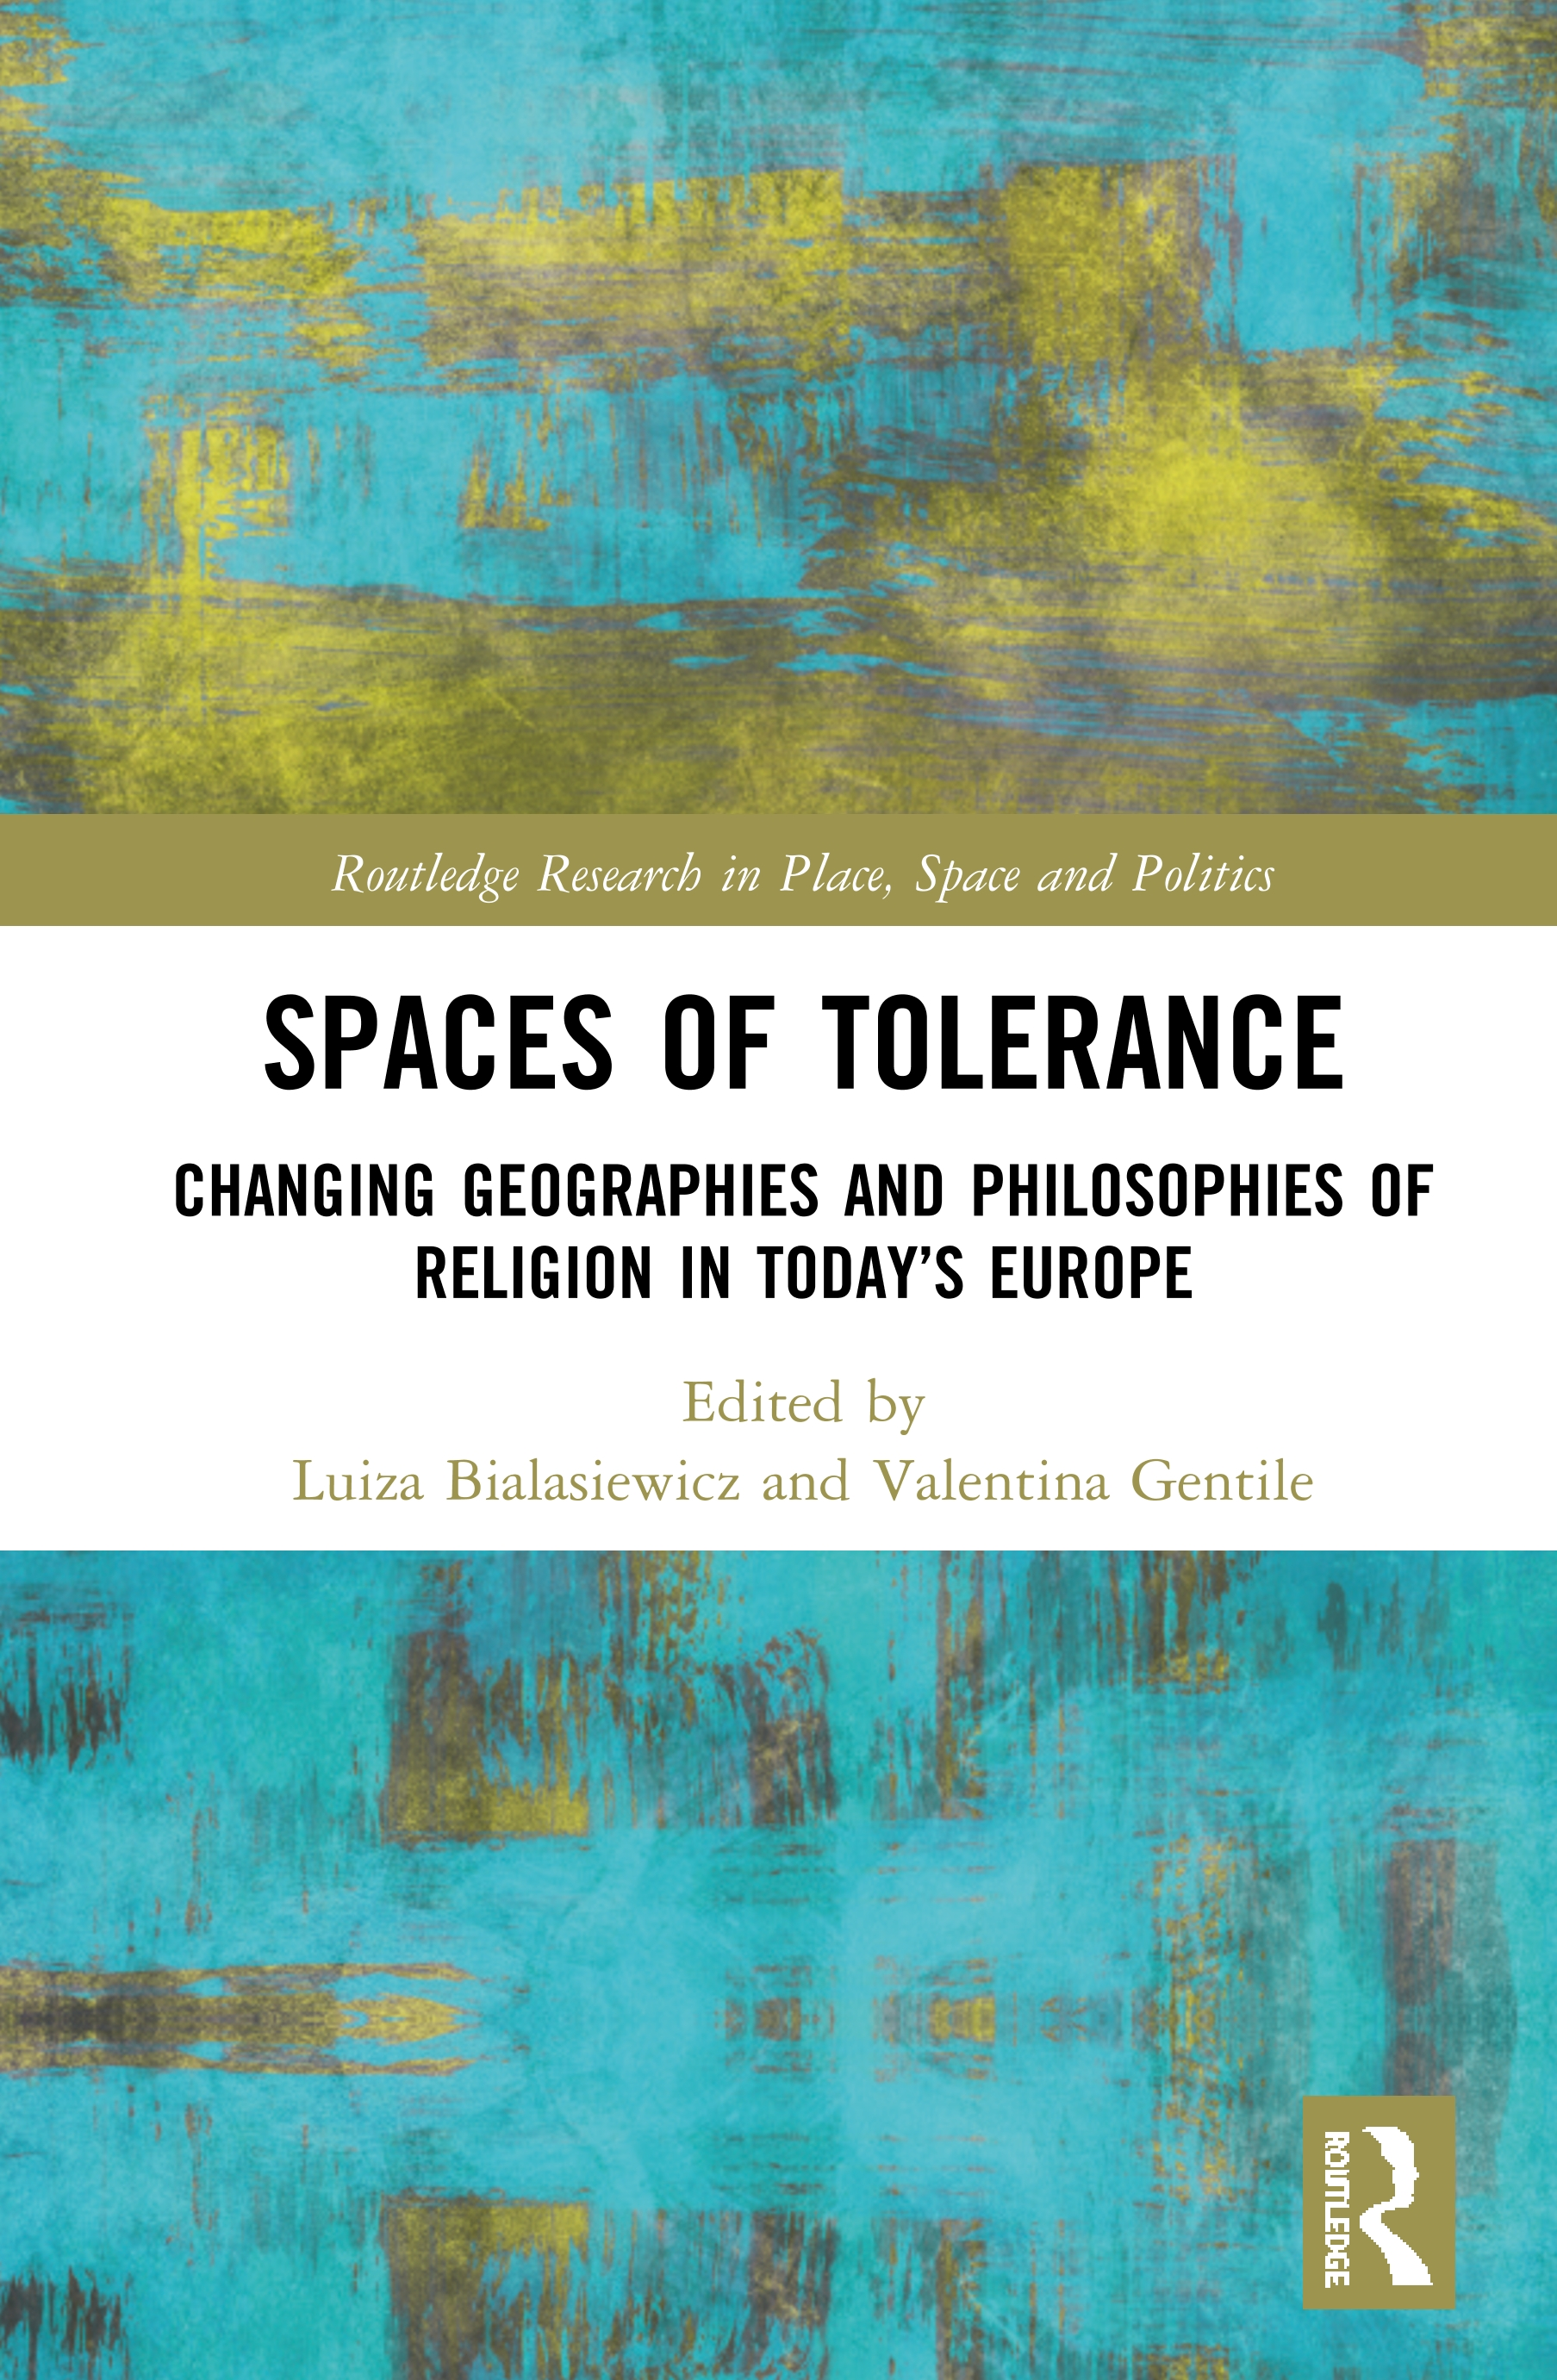 Spaces of Tolerance: Changing Geographies and Philosophies of Religion in Today's Europe book cover